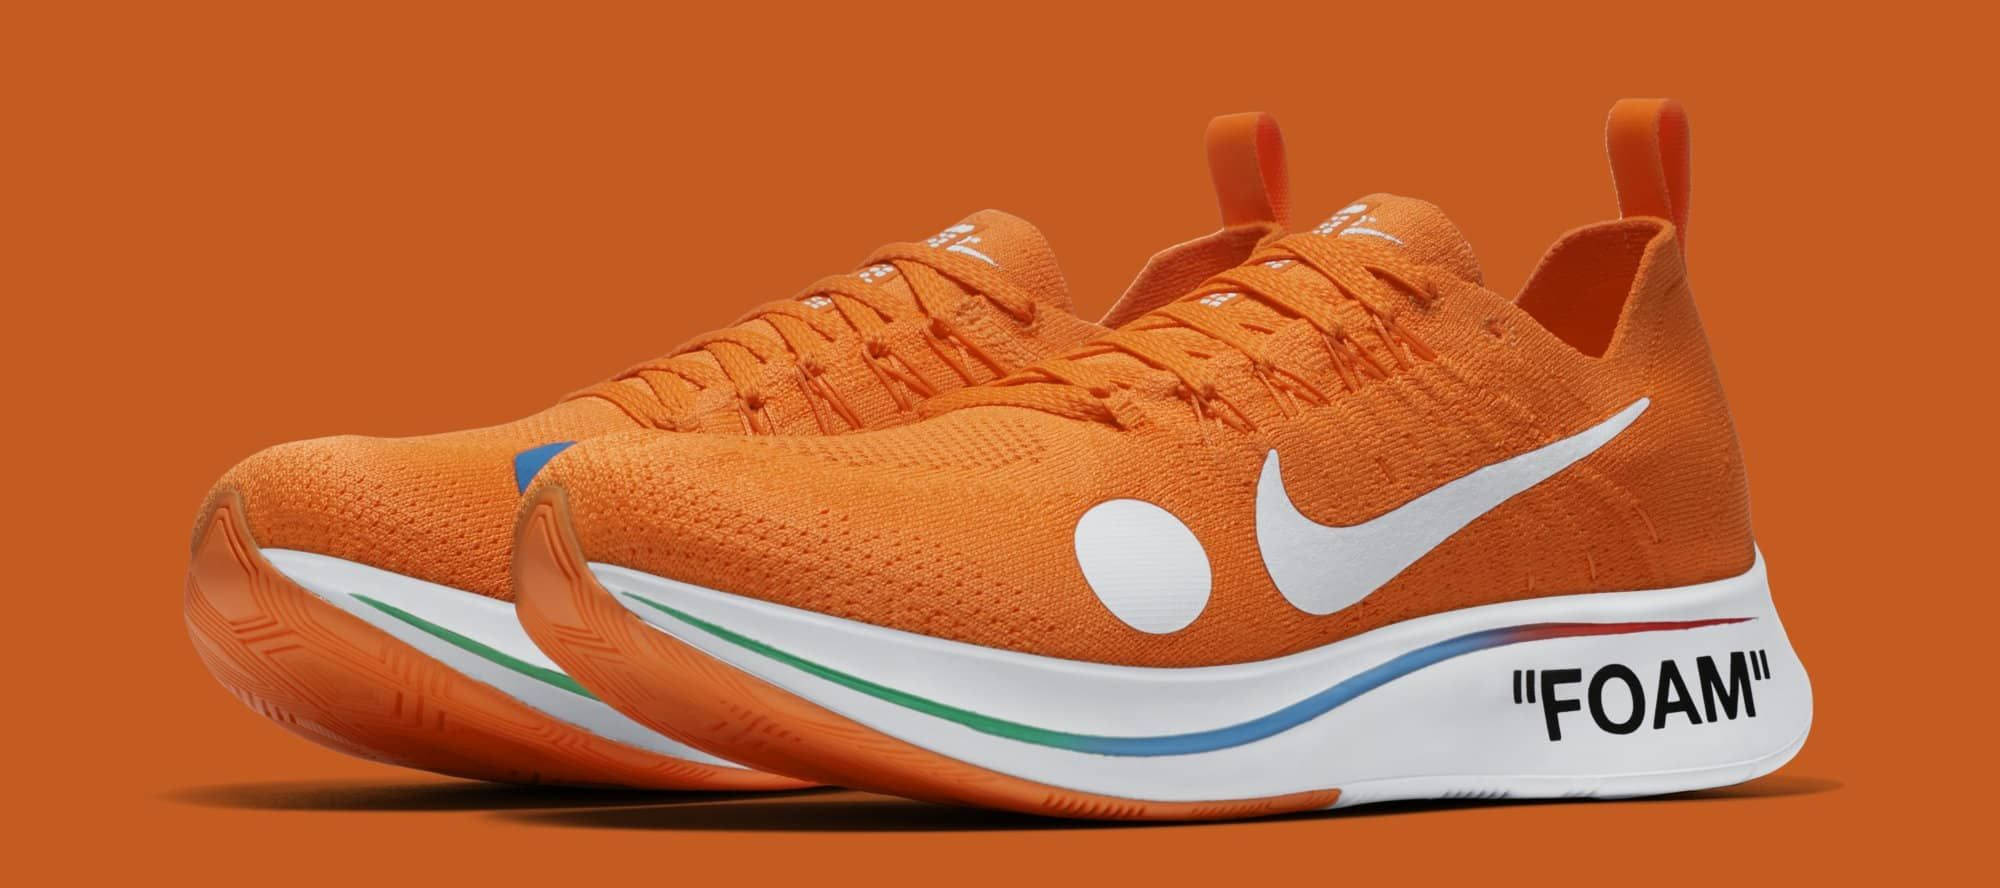 483f74e71bbc Off-White x Nike Zoom Fly Mercurial Flyknit  Total Orange  AO2115-800 (Pair)